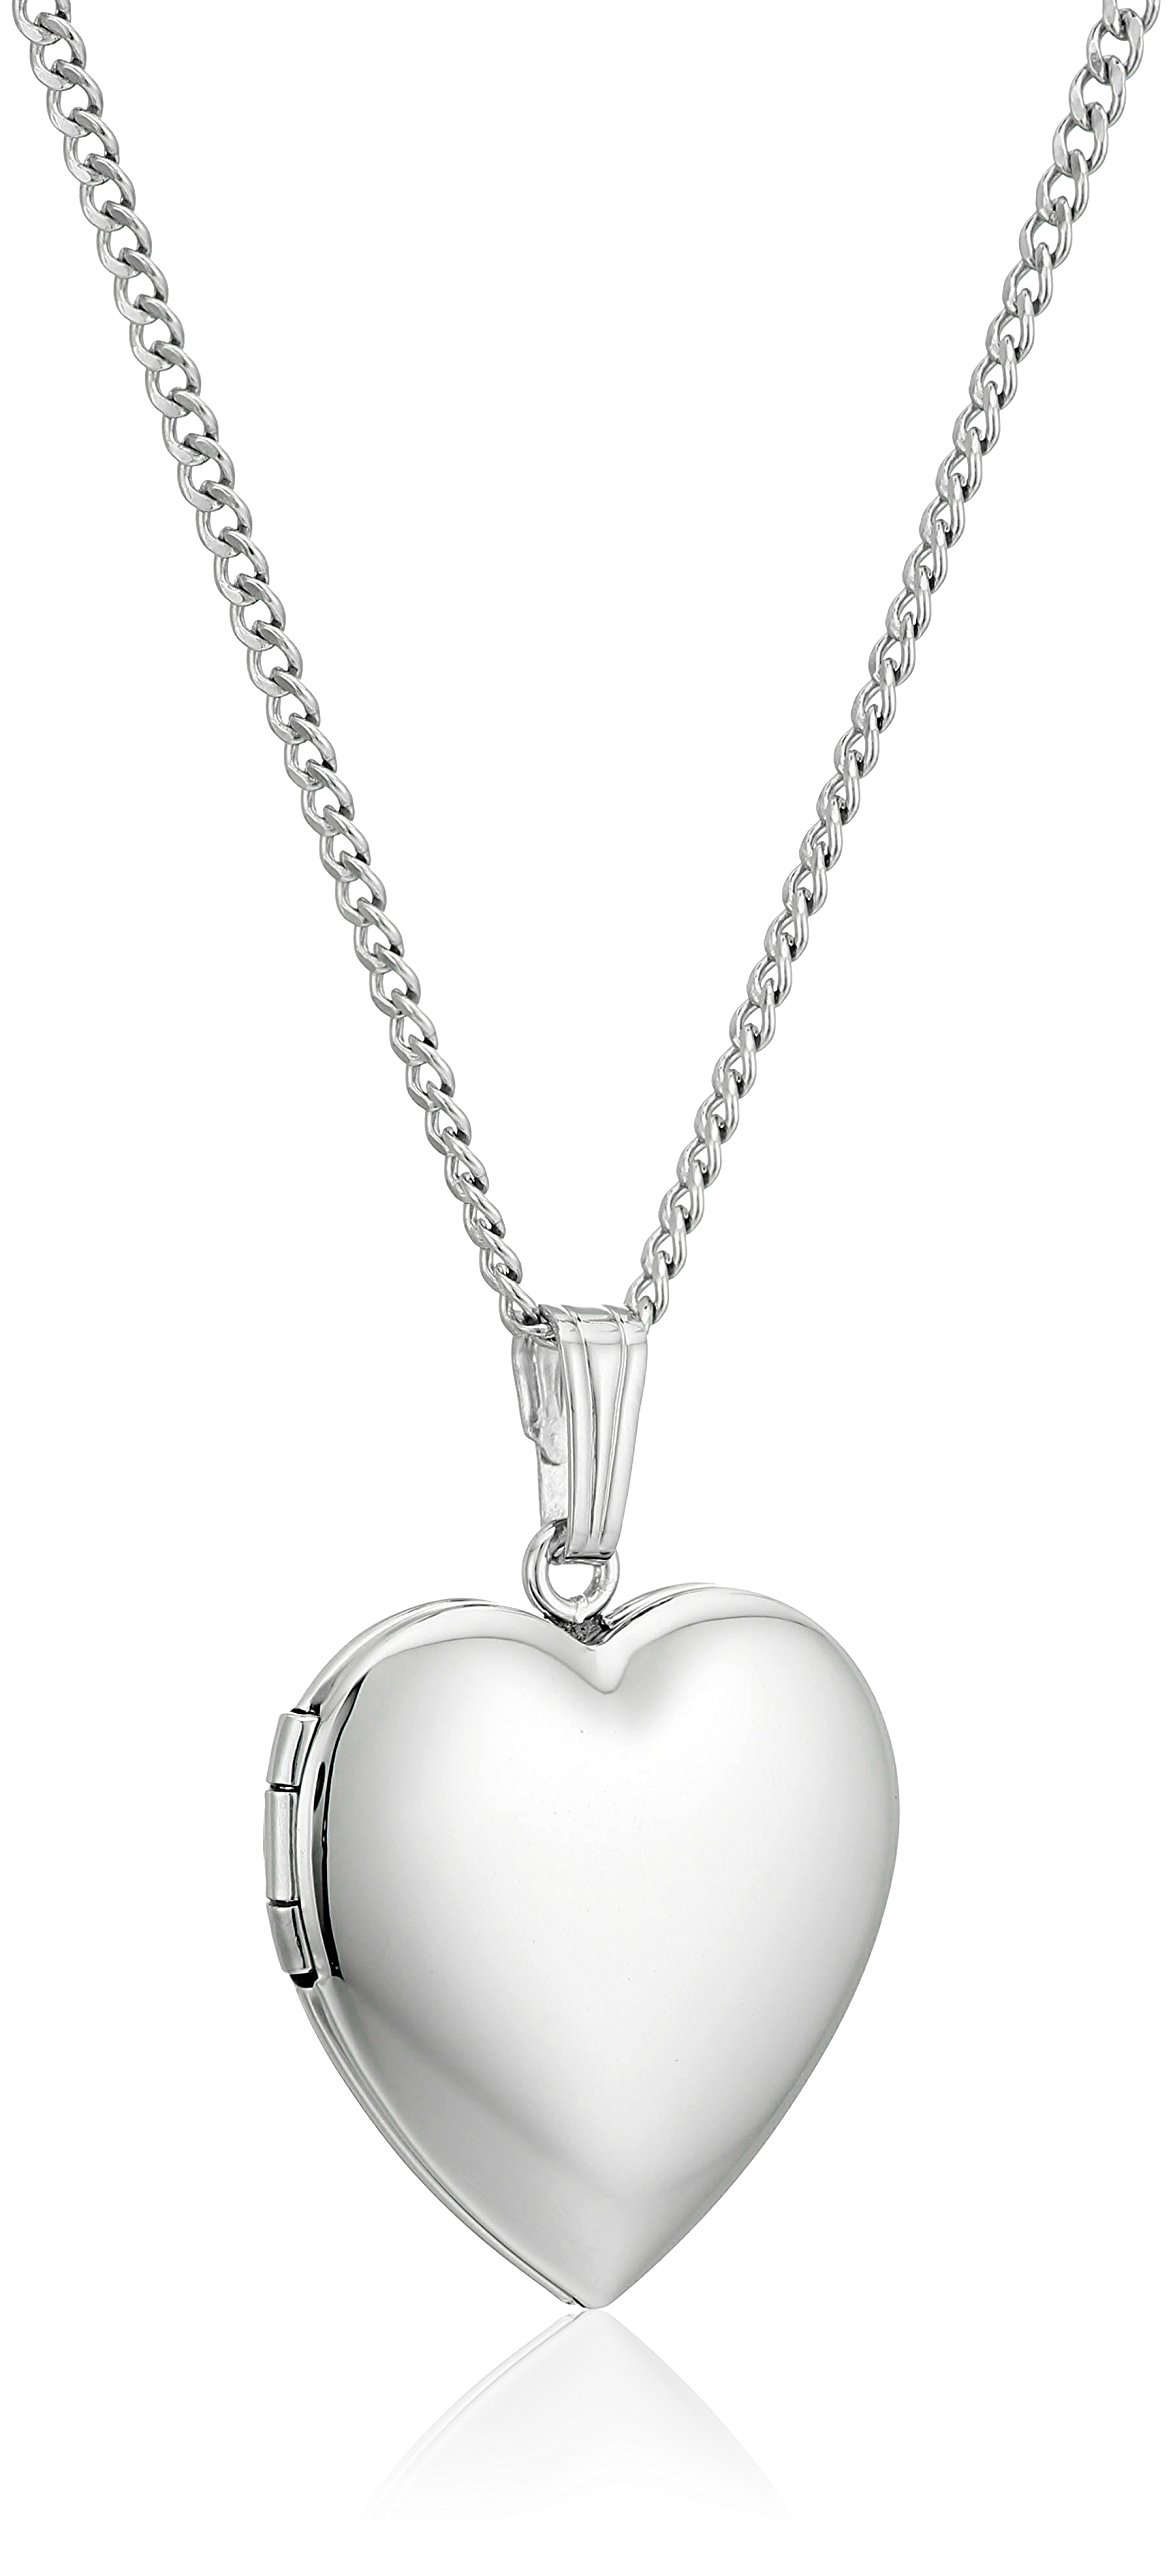 Sterling Silver Polished Heart Locket Pendant Necklace, 18''